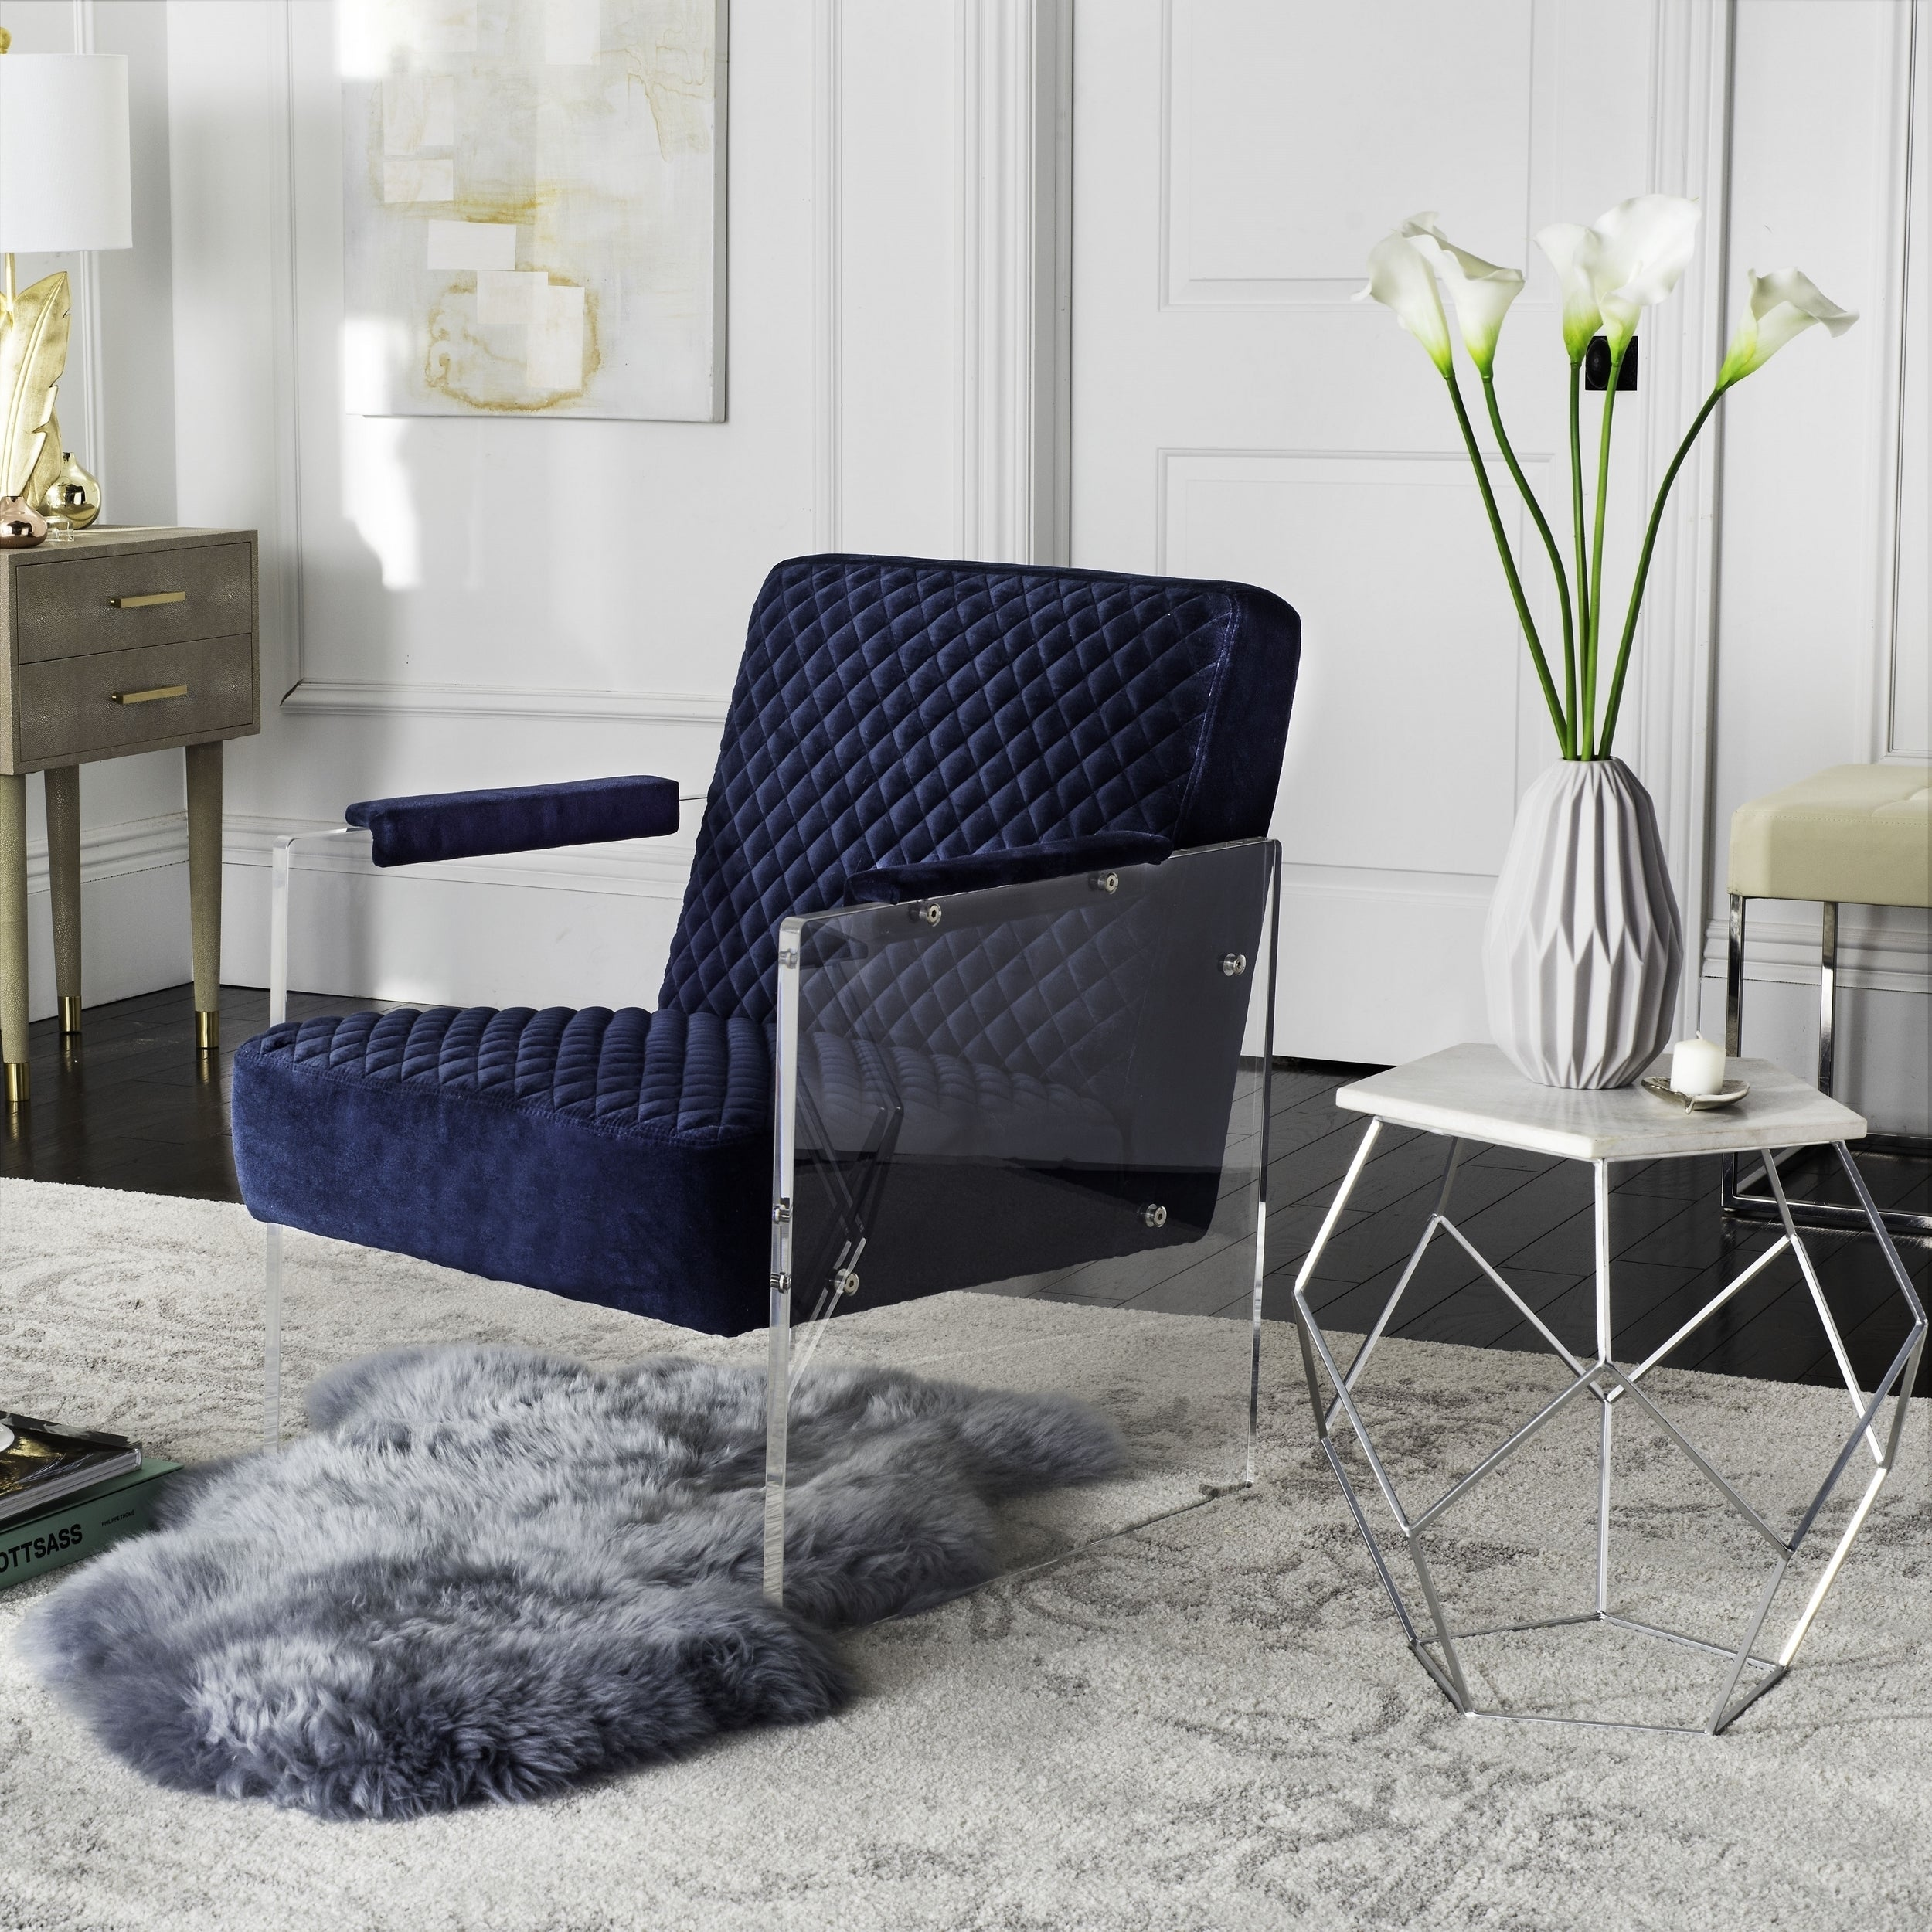 Details About Safavieh Couture High Line Collection Malena Navy Blue  Acrylic Arm Chair